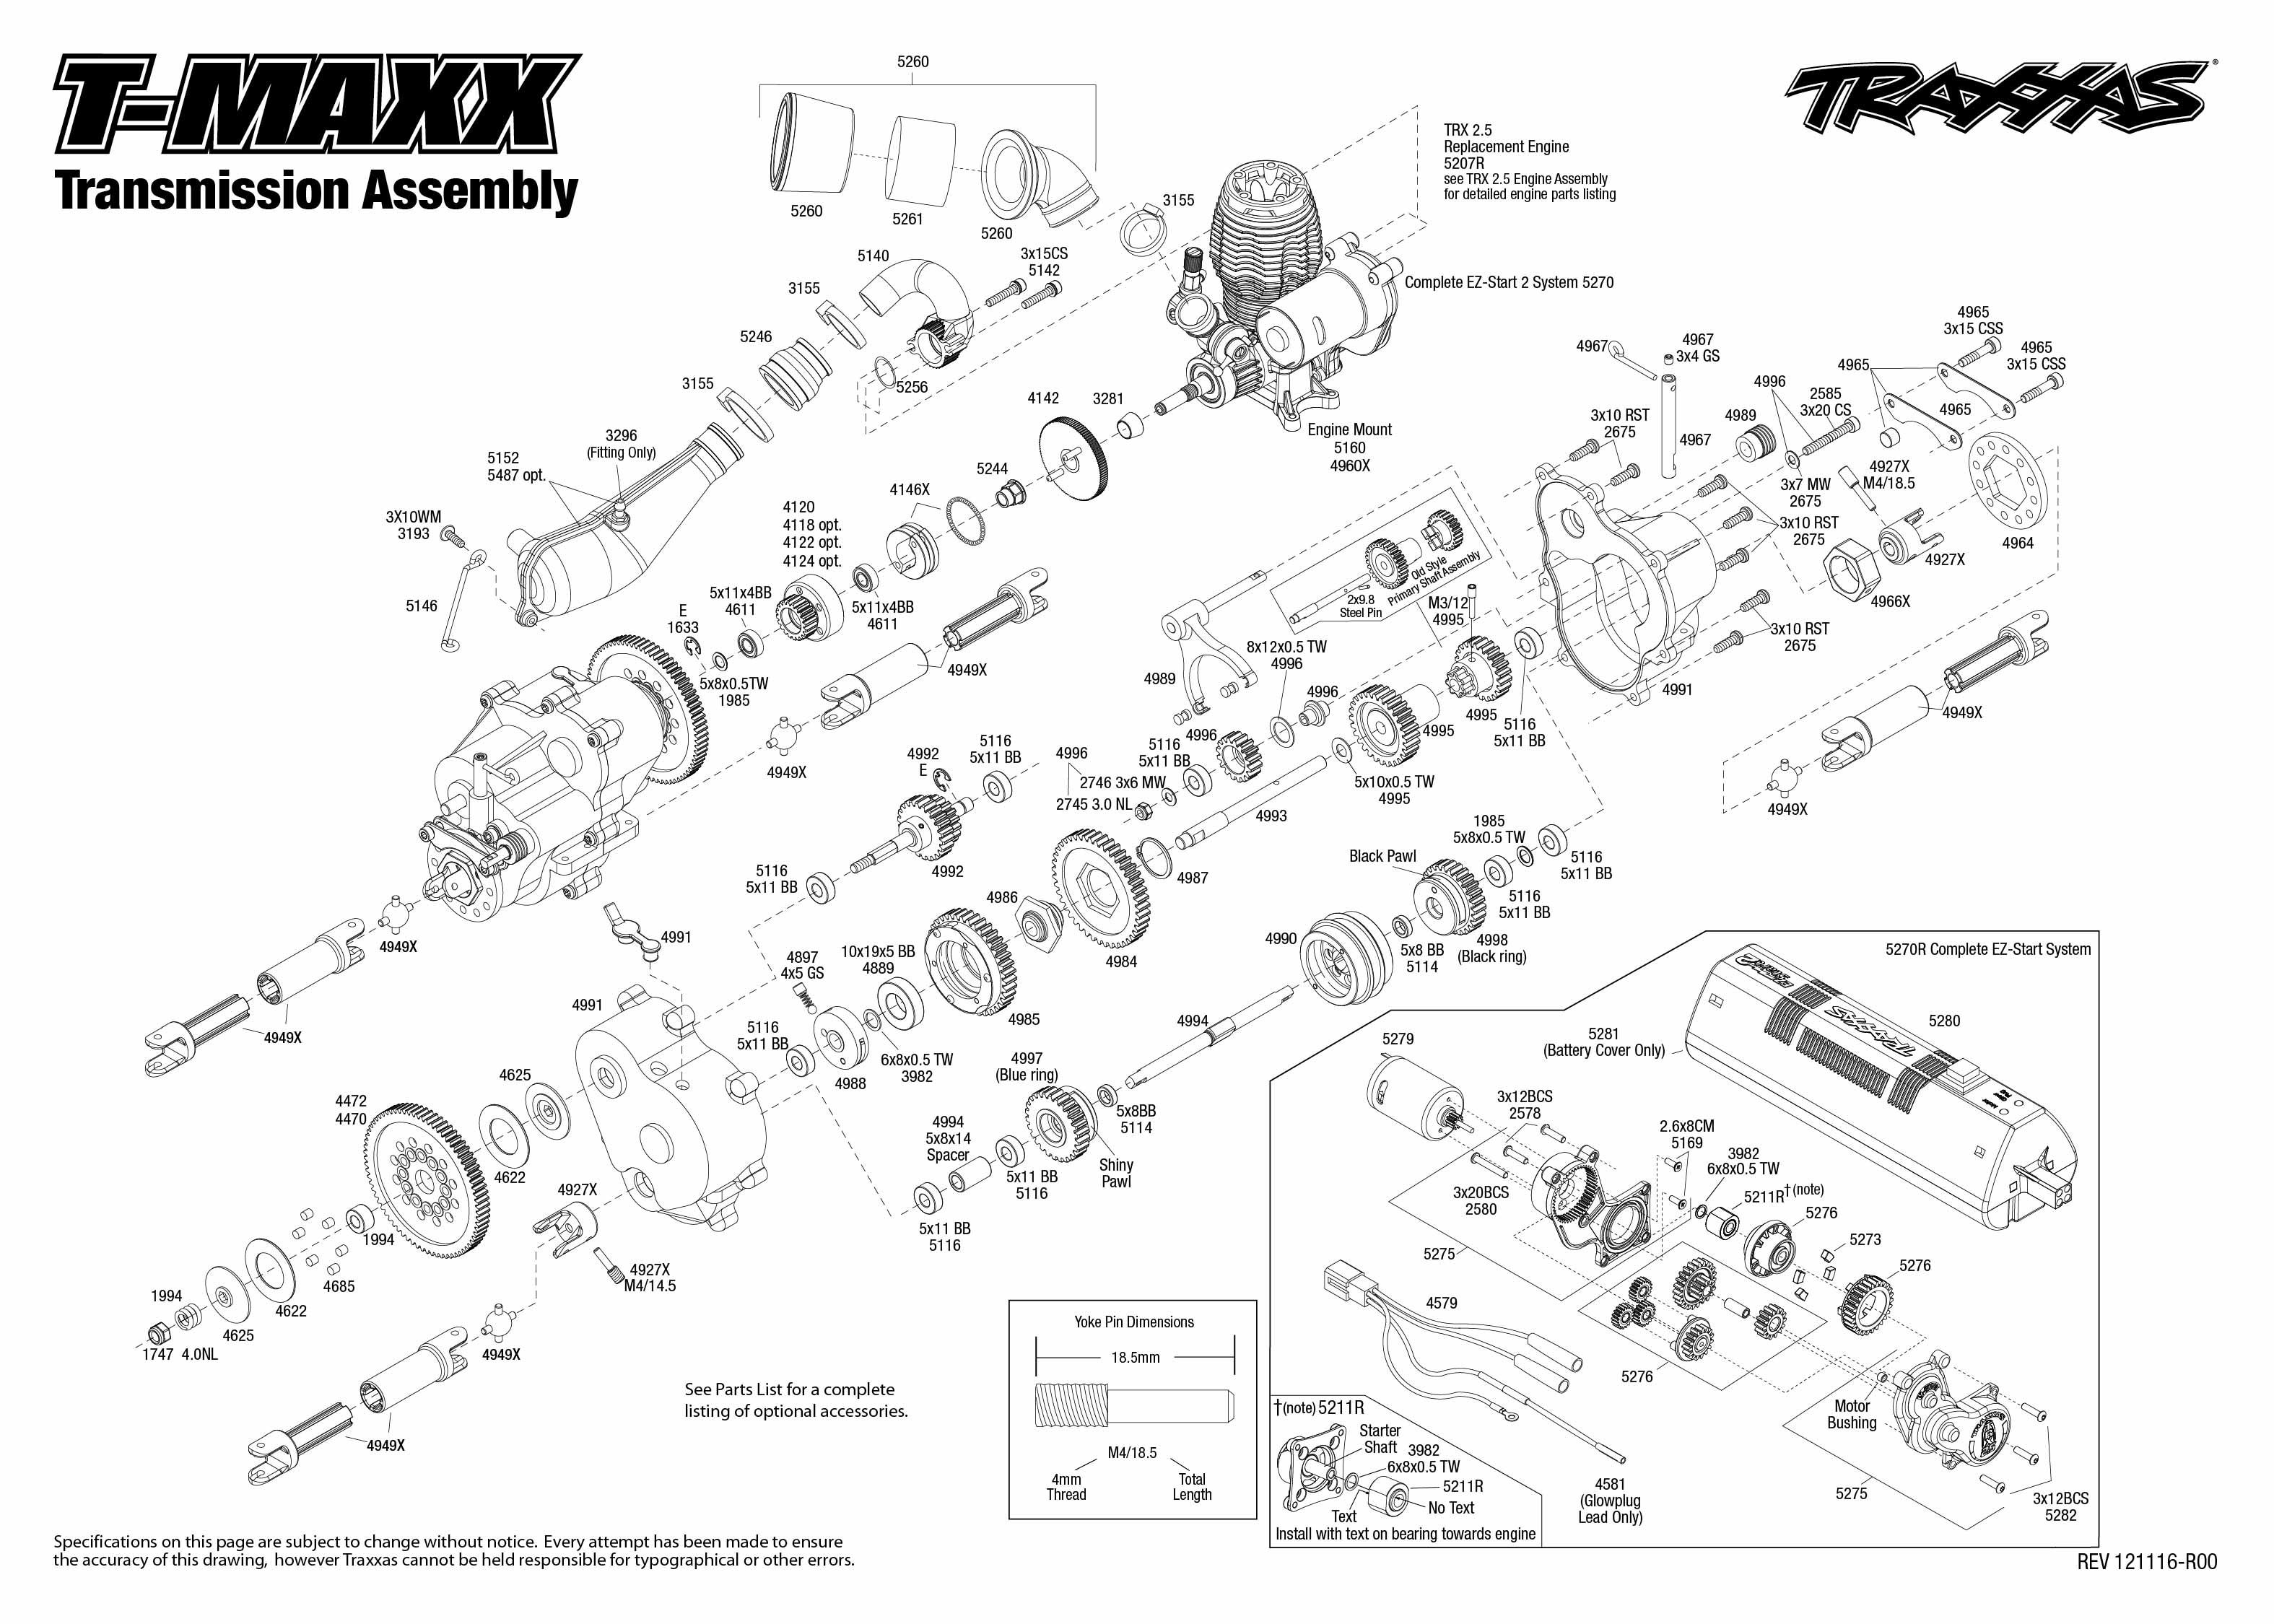 T Maxx Transmission Assembly